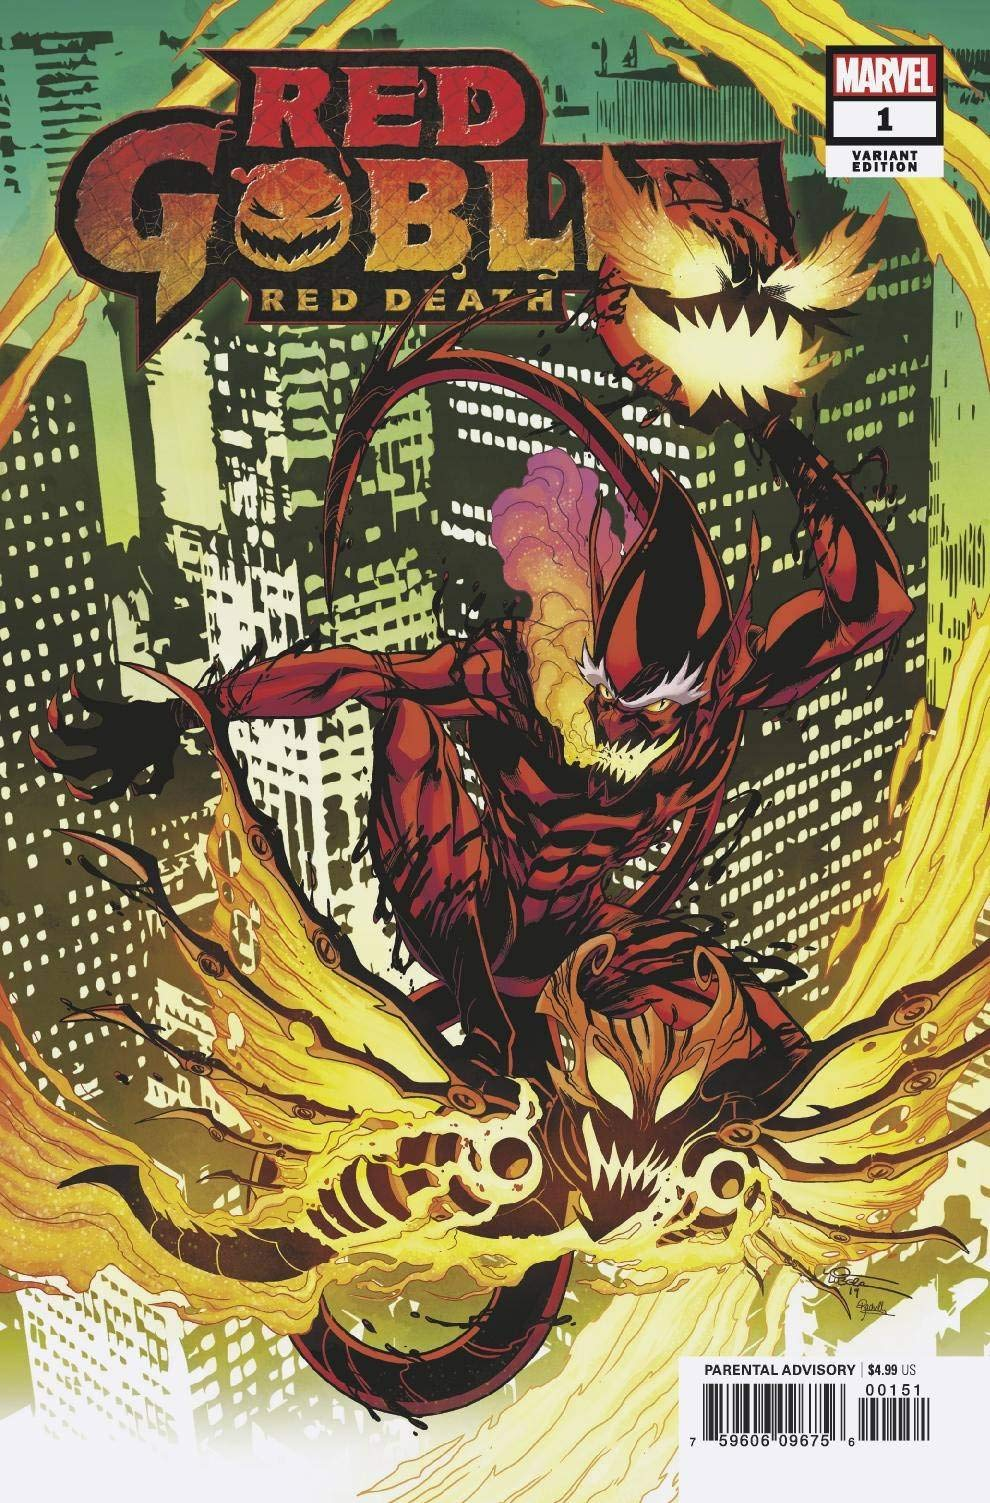 RED GOBLIN RED DEATH #1 LUBERA VARIANT MARVEL COMICS EB93 10//30//2019